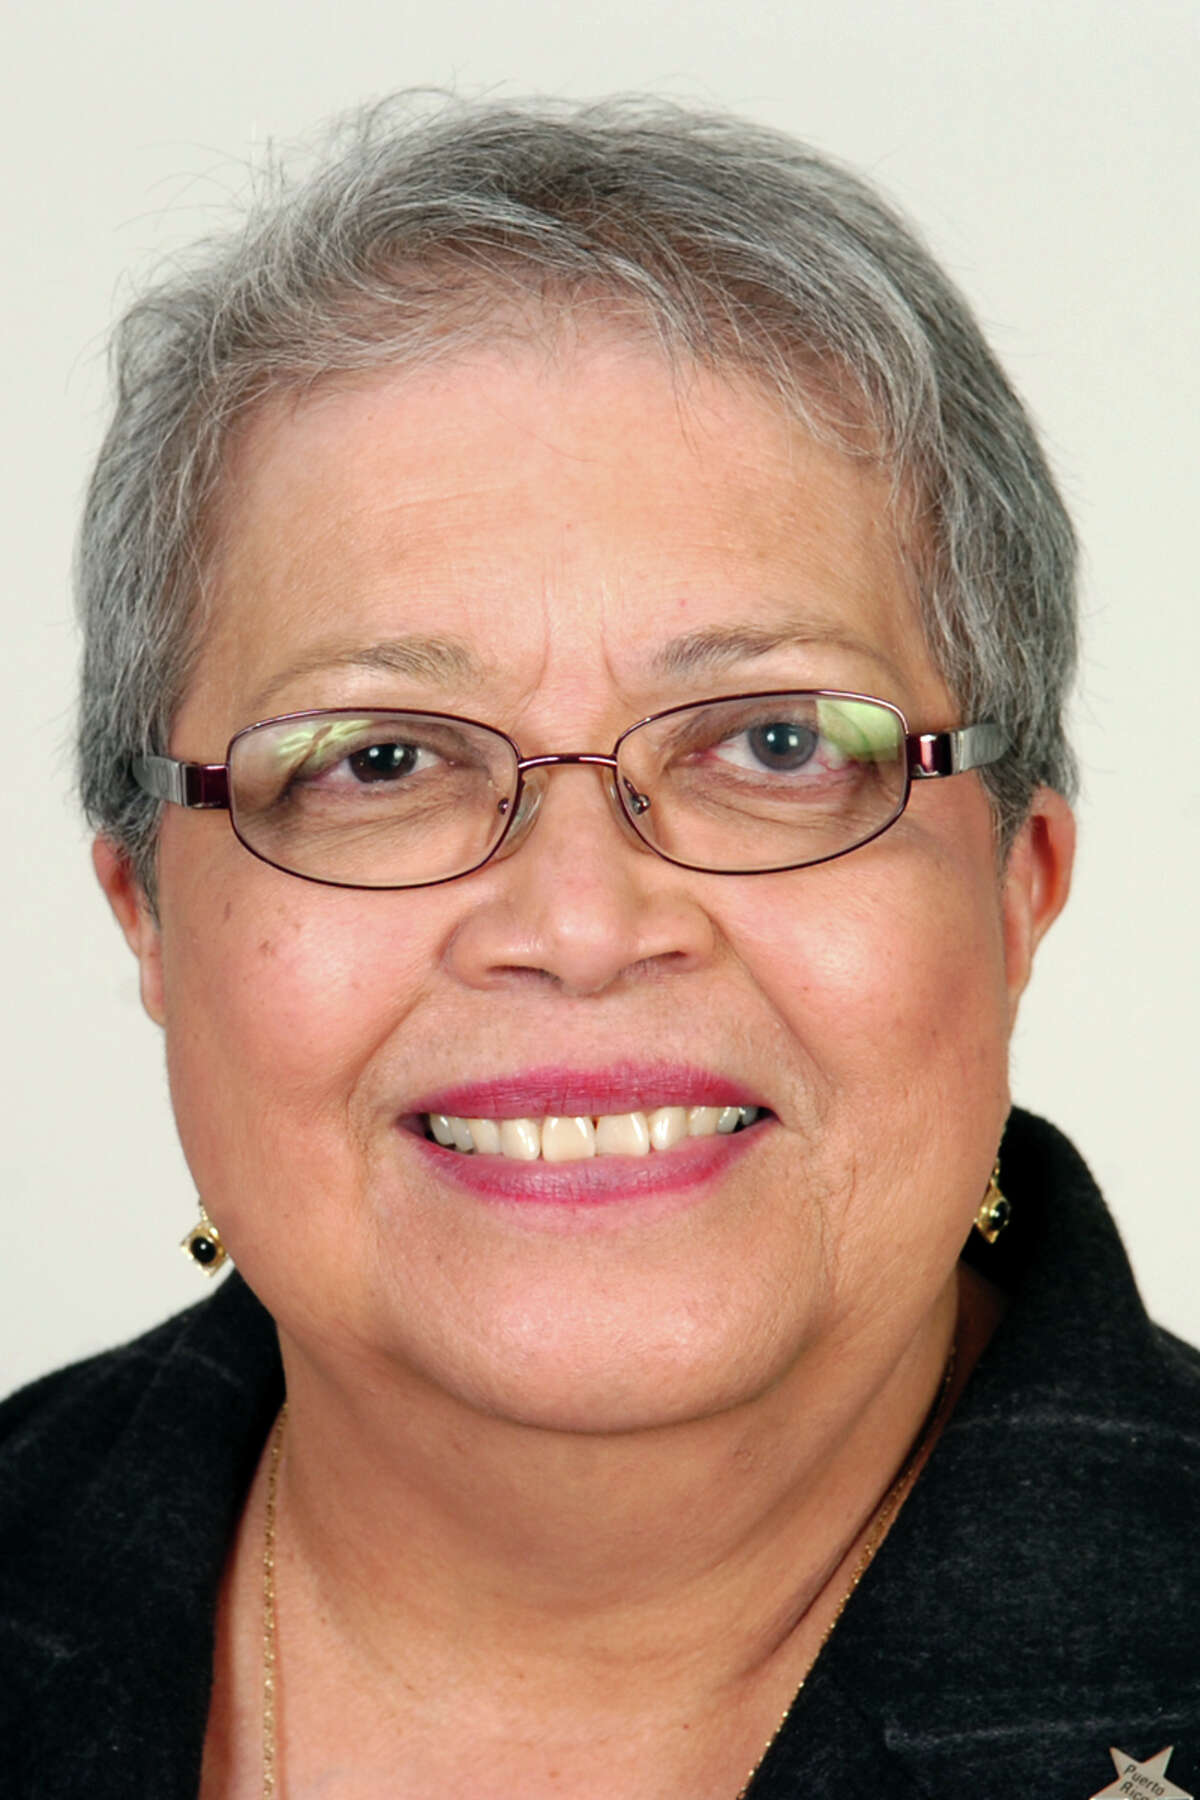 Rosa Correa successfully petitioned her way onto the November ballot as a candidate for registrar of voters.